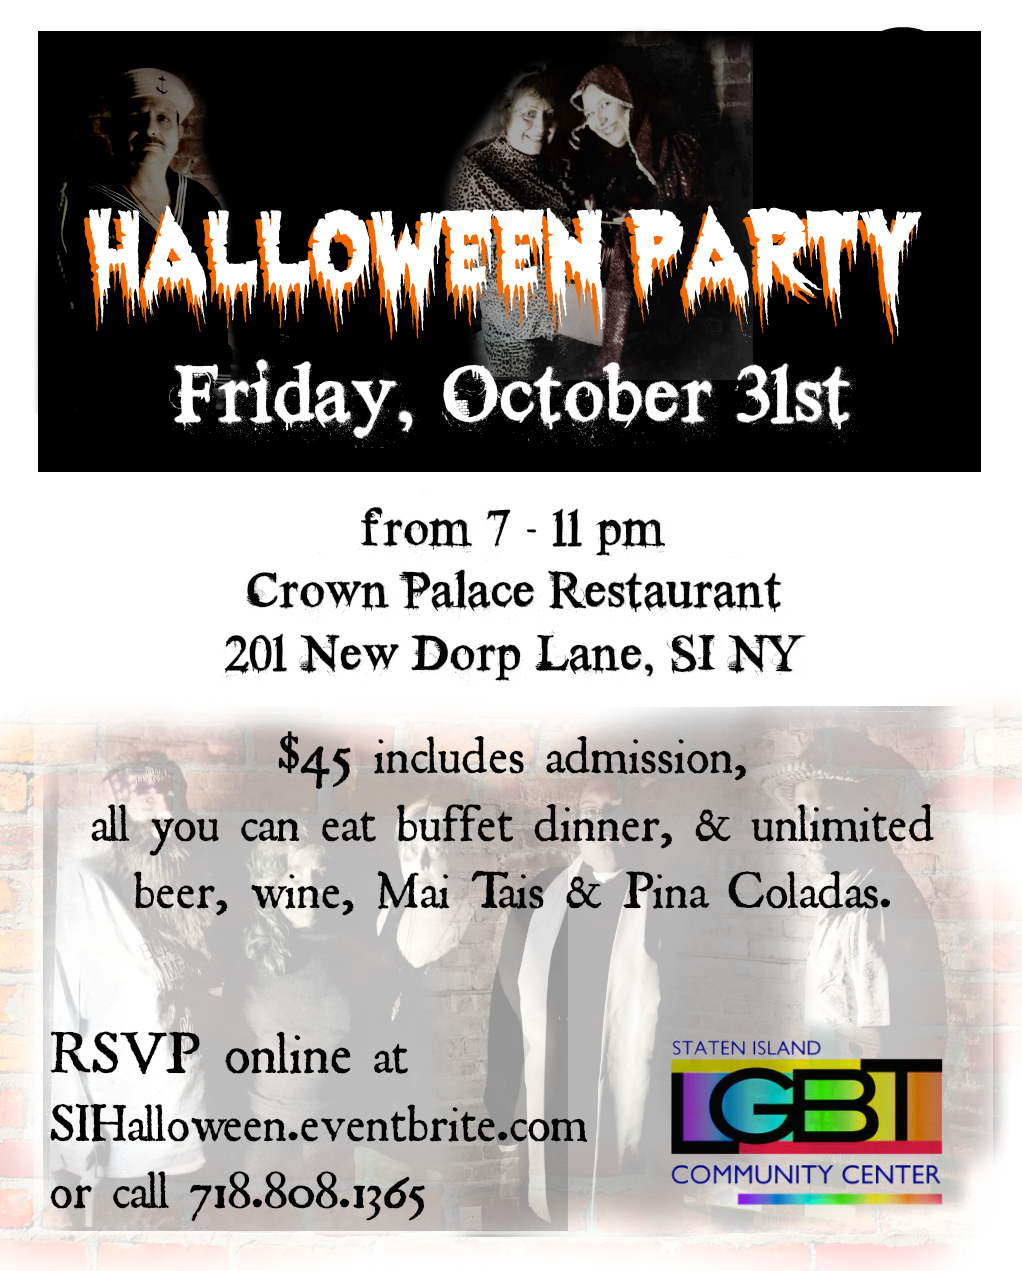 2014 LGBT Halloween at Crown Palace Restaurant | Fairplay TV